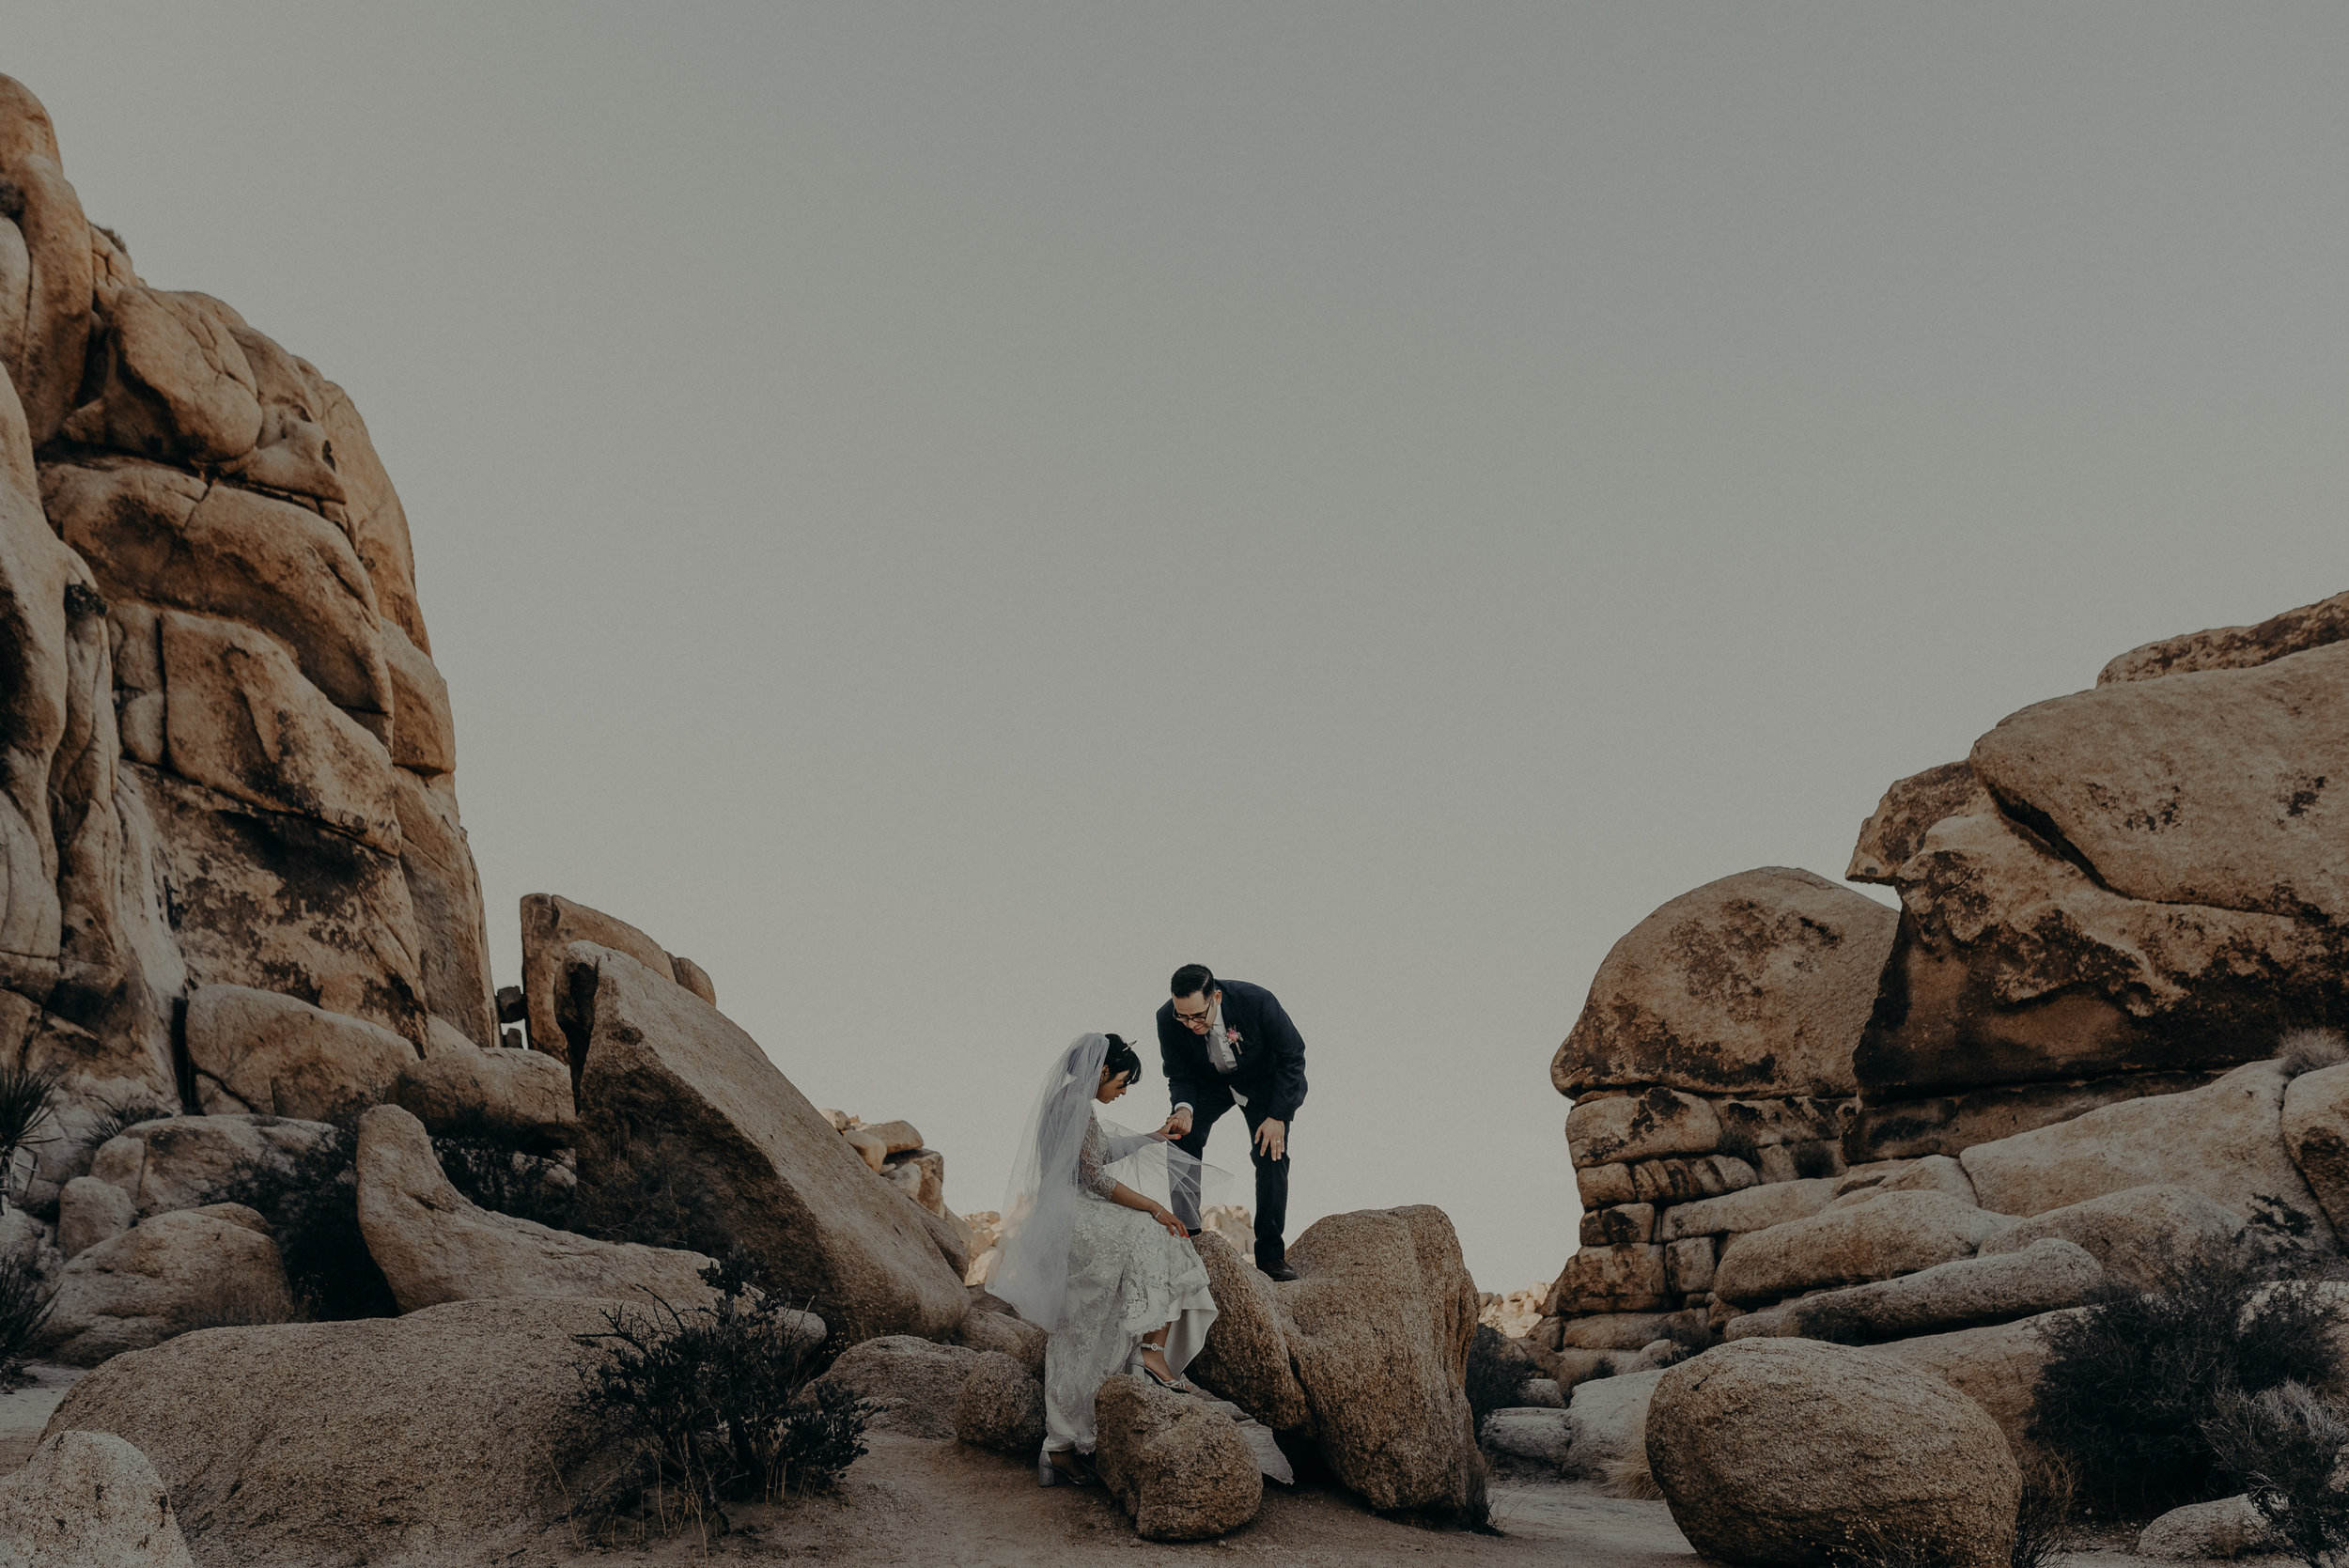 indian cove amphitheater wedding, Joshua tree elopement